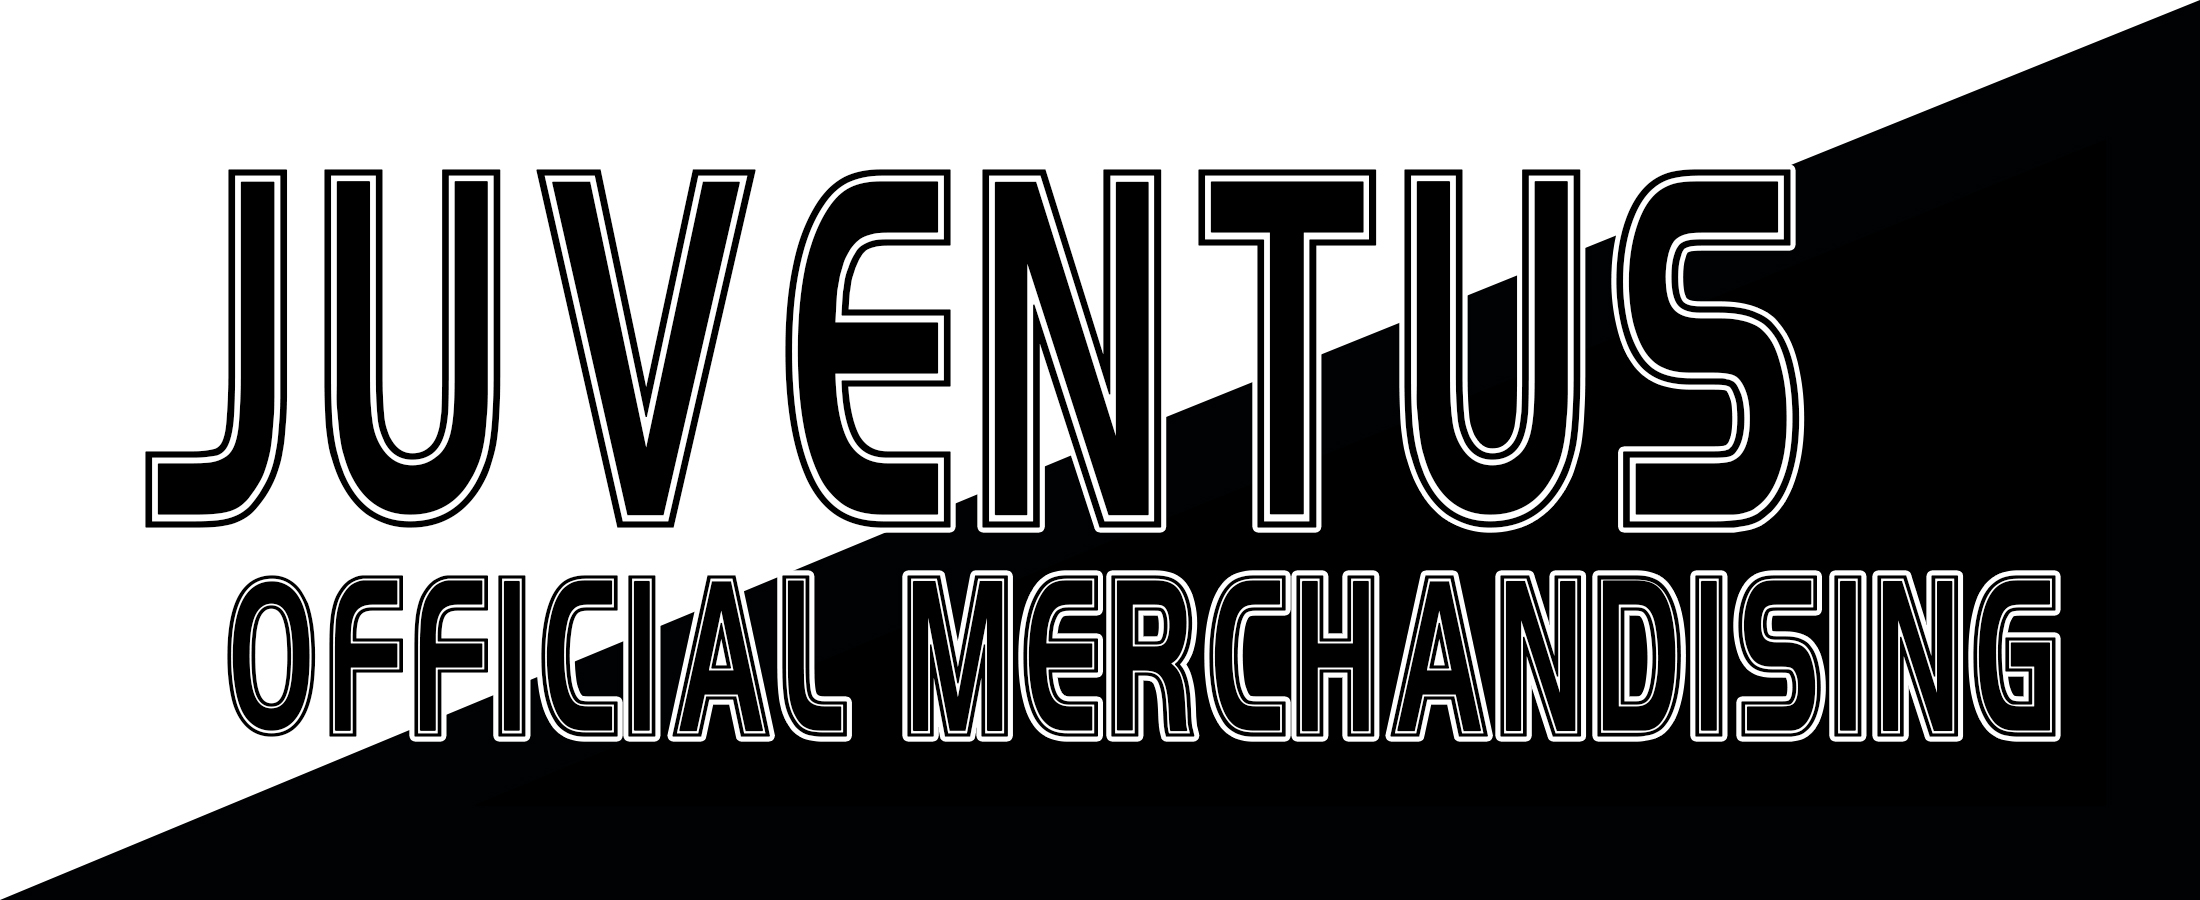 JUVENTUS OFFICIAL MERCHANDISING